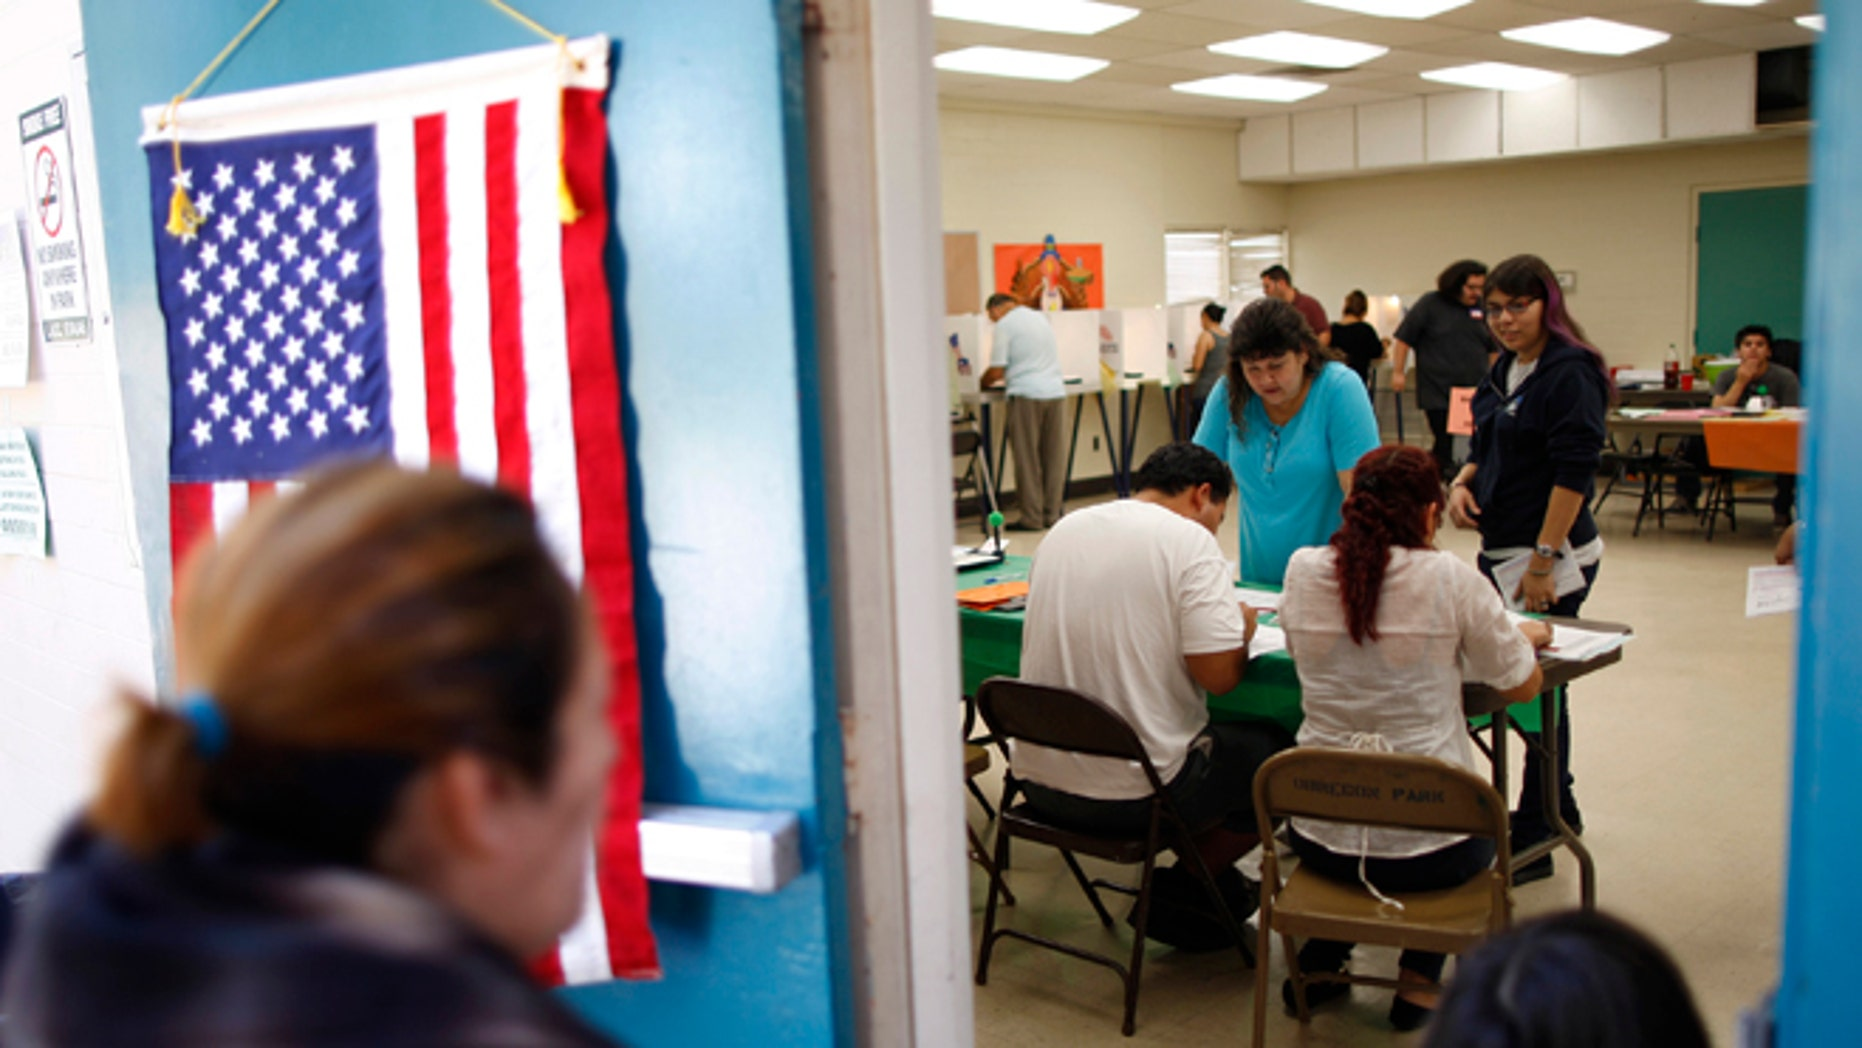 People vote at a polling place in the heavily Latino East L.A. area during the U.S. presidential election on November 6, 2012 in Los Angeles, California.   (Photo by David McNew/Getty Images)